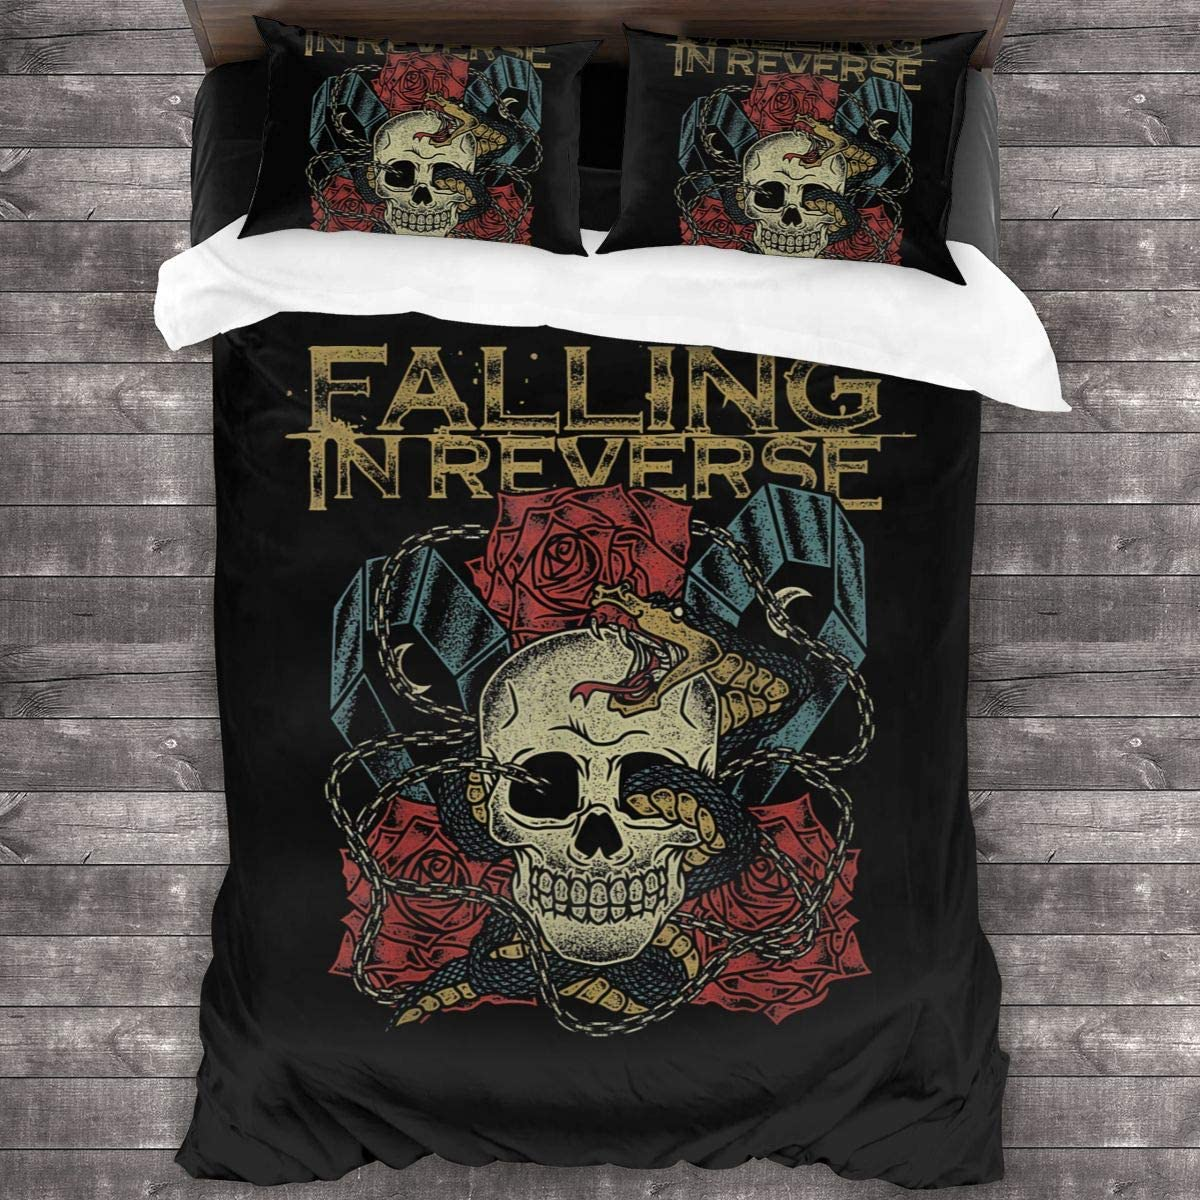 Falling in Reverse Sheet Cover-3 Piece Set-Hotel Luxury Bed Sheet-Extra Soft-Deep Pocket-Easy to Install-Breathable and Cooling Sheets-No Wrinkles-Comfortable.